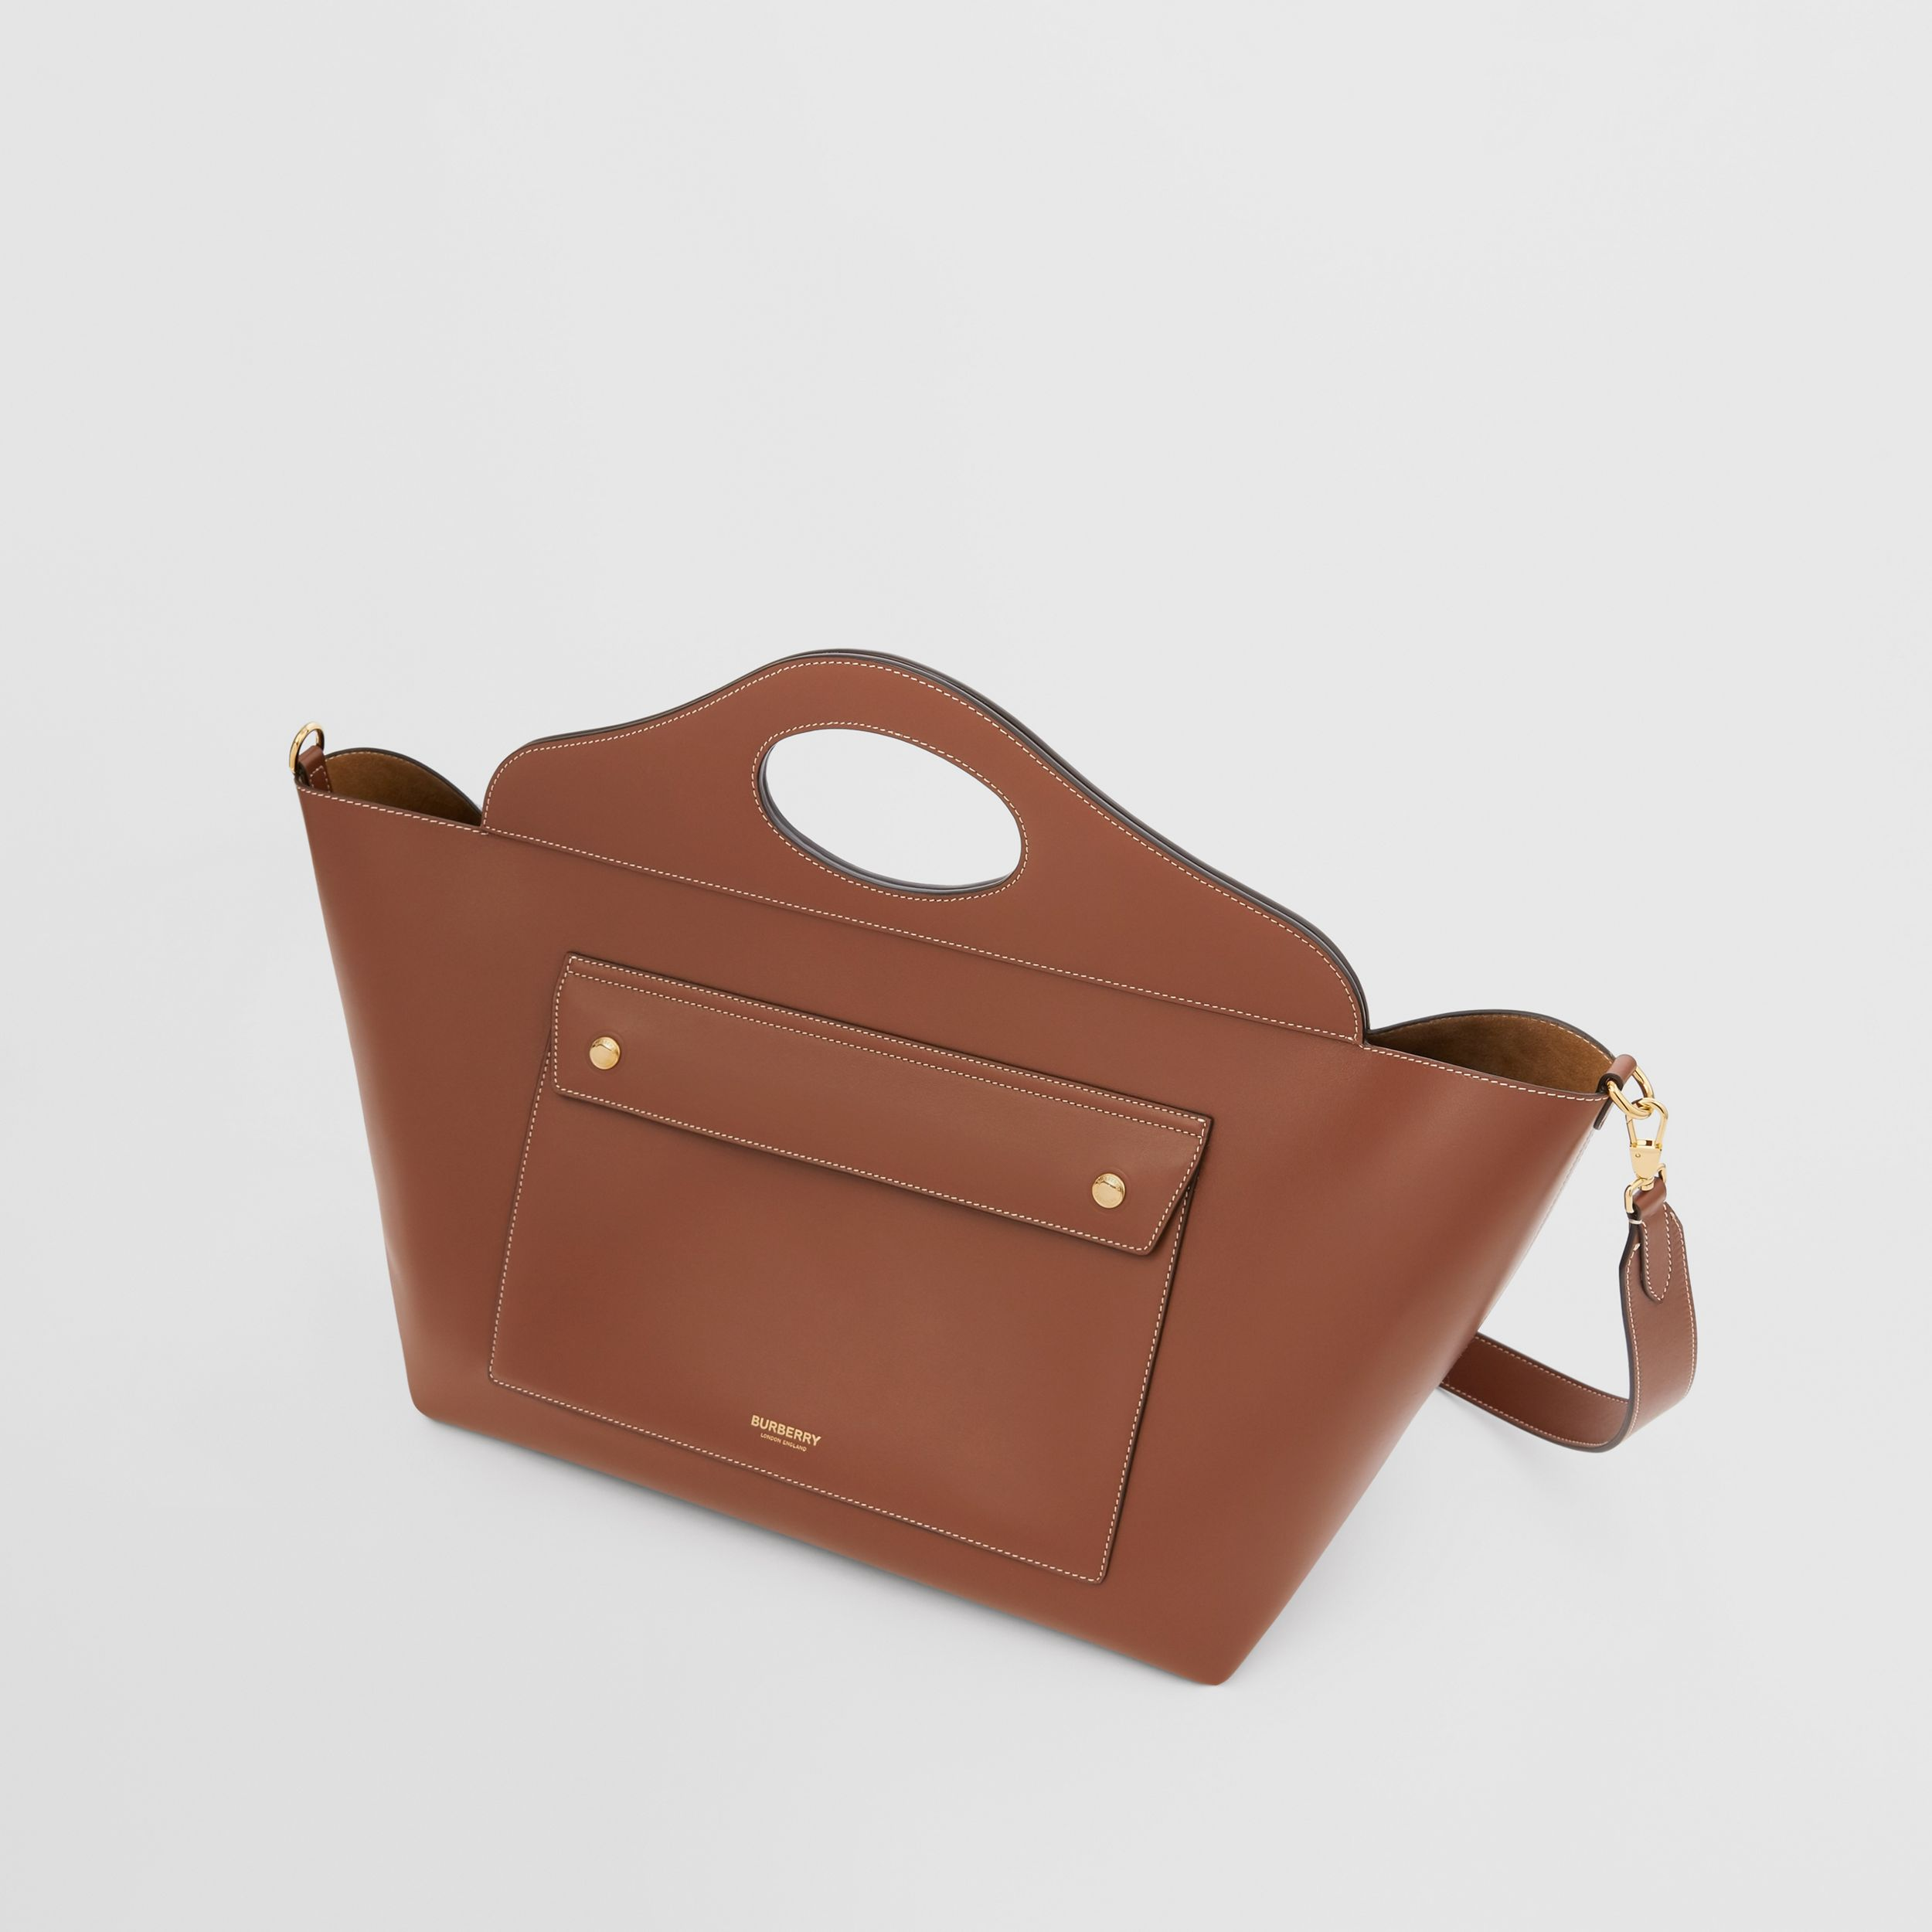 Medium Leather Soft Pocket Tote in Tan - Women | Burberry - 4